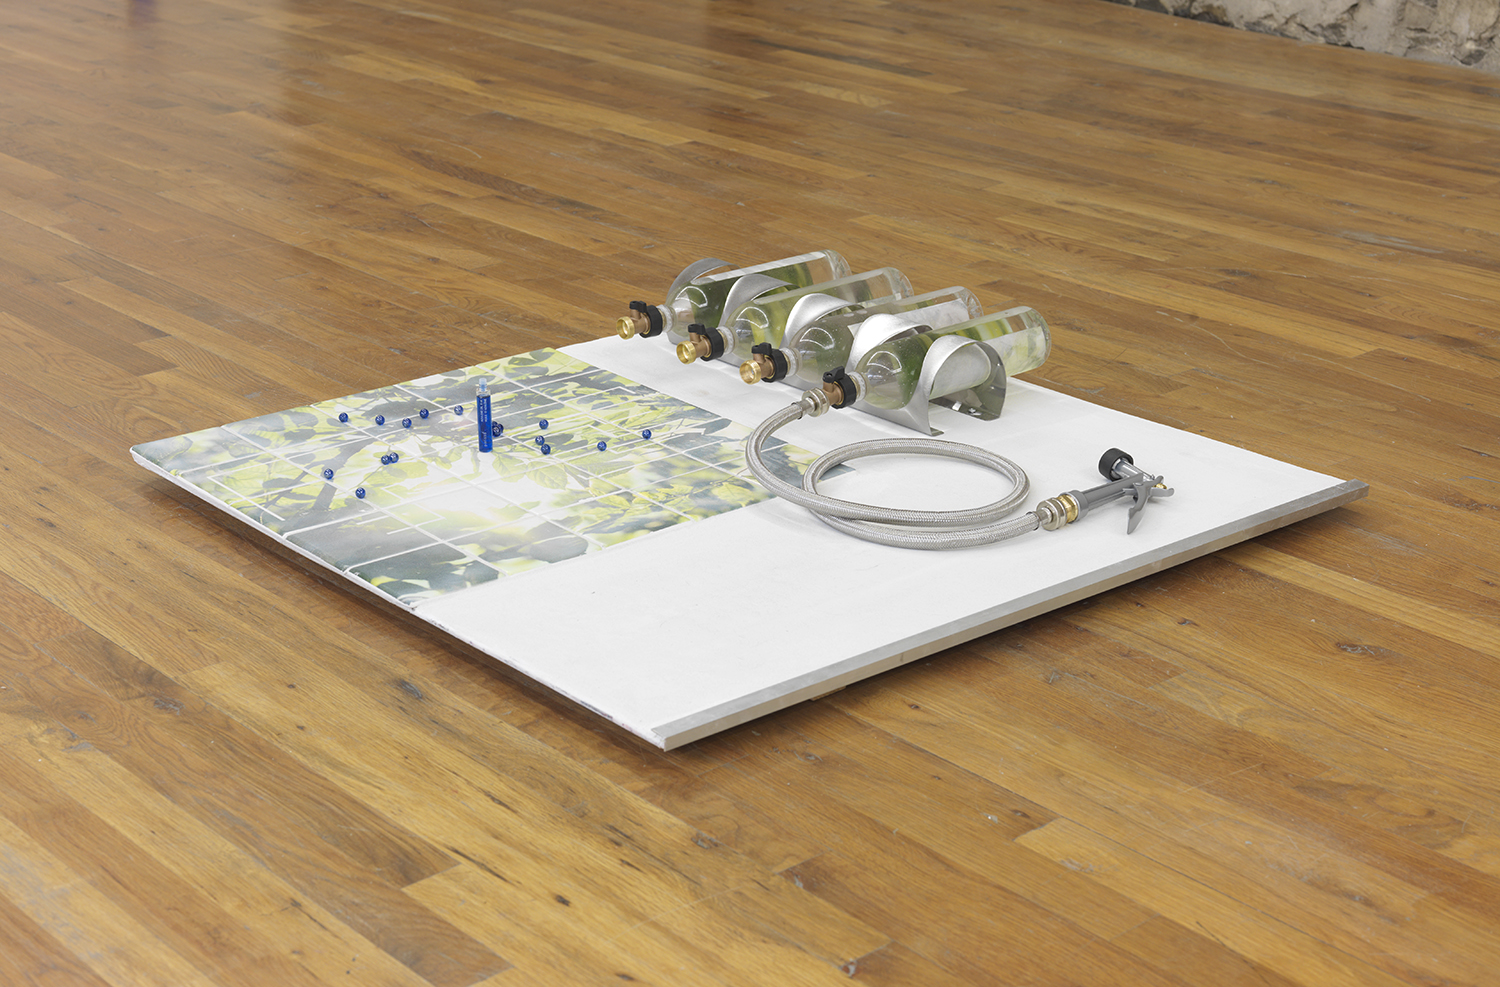 Carson Fisk-Vittori  Weather options: image woman vs. image nature diagram , 2014 Ceramic tiles, concrete panel, grout, wood, inkjet transfer, aluminum angle, weather bottles, brass adapters, stainless steel hose sand spray nozzle, glass spheres, glass vial, aluzene 6 x 36 x 36 inches